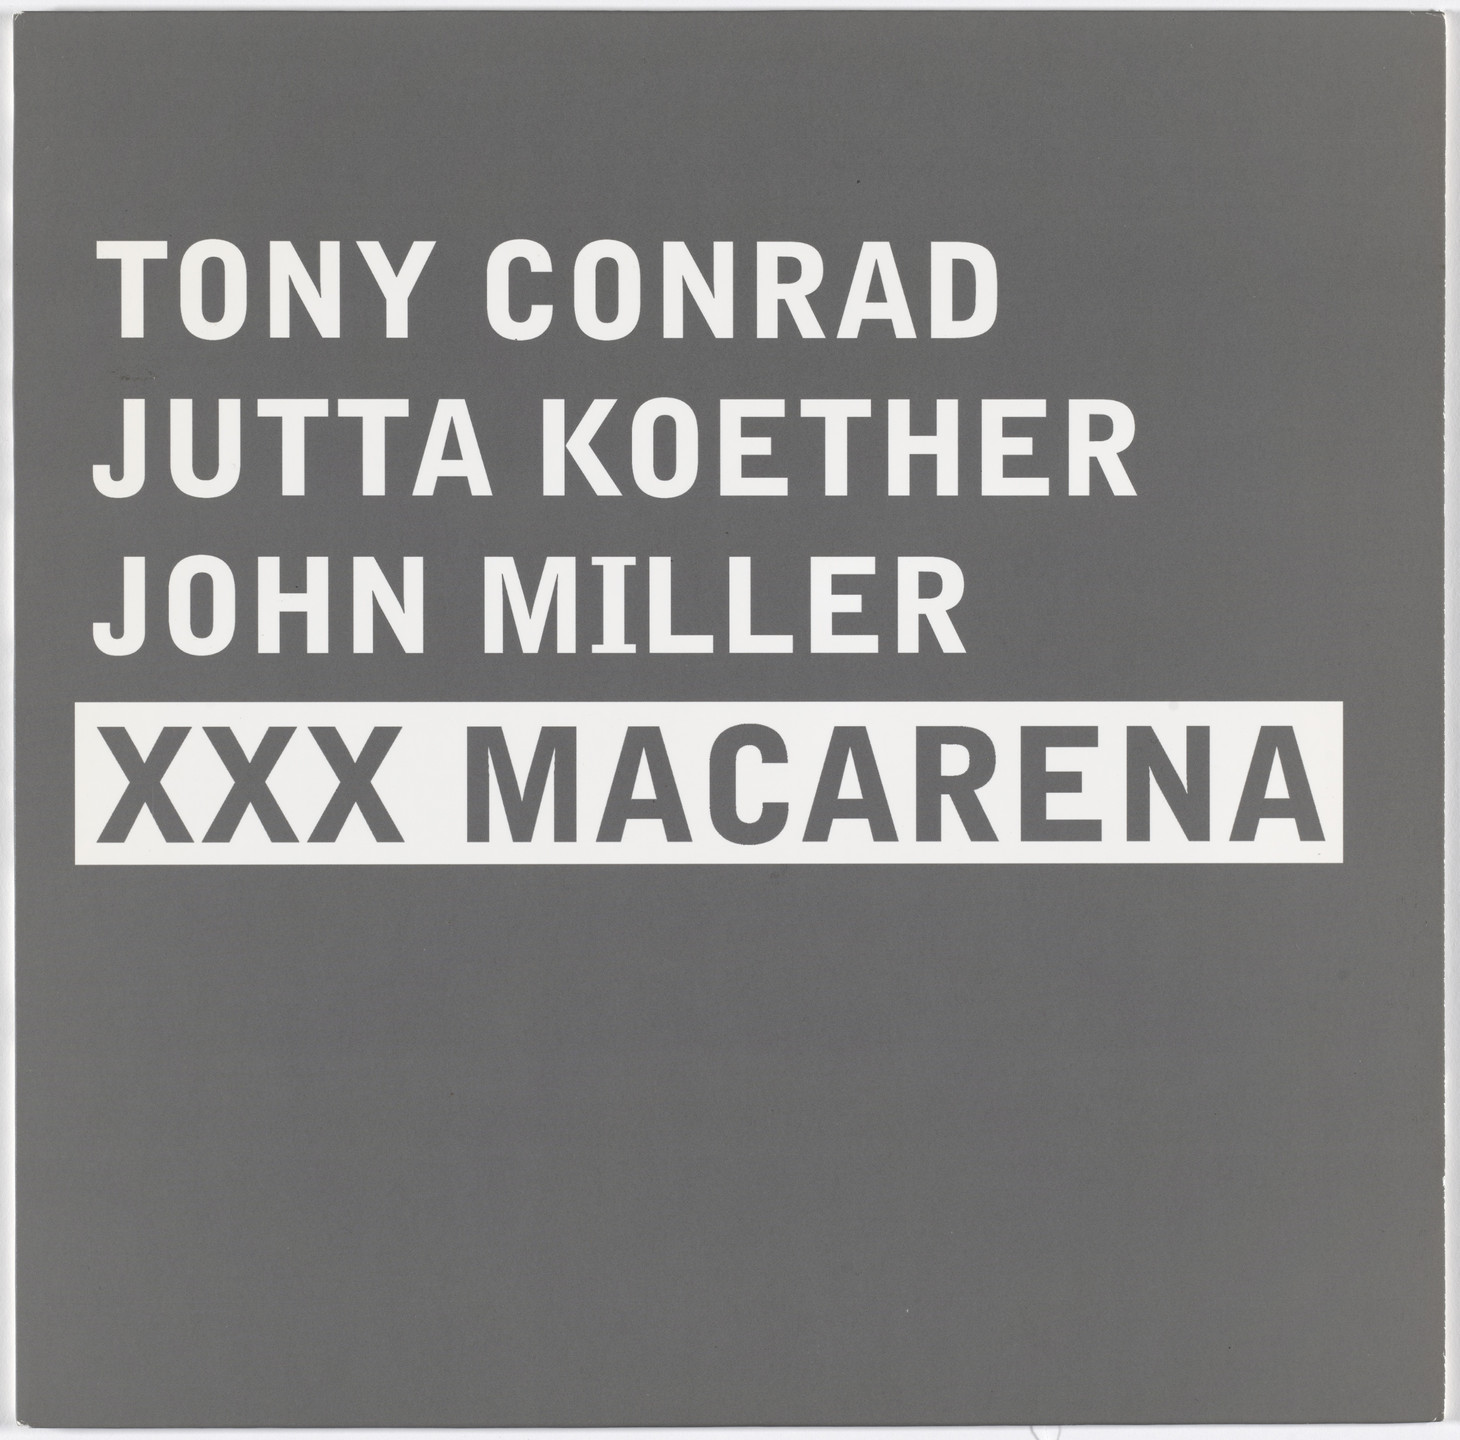 Tony Conrad, Jutta Koether, John Miller, Various Artists. XXX Macarena. 2010